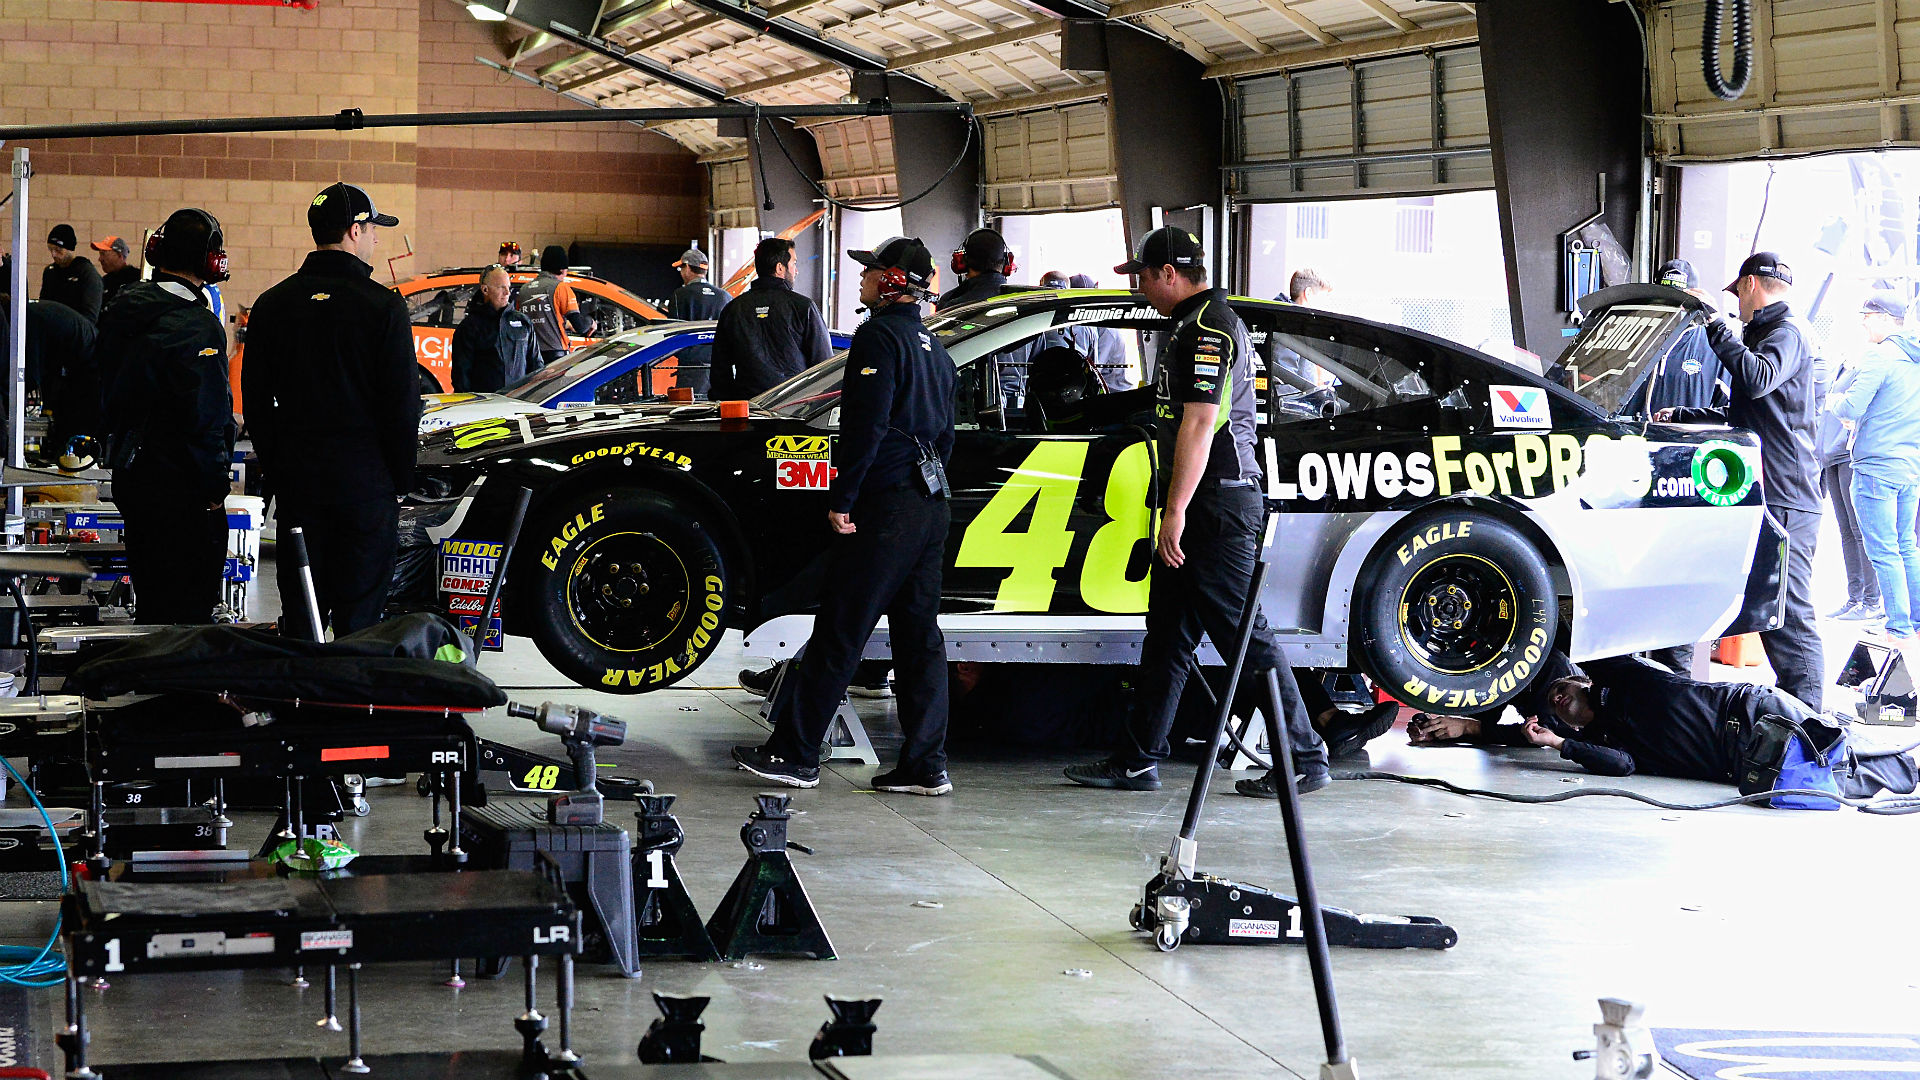 NASCAR exec: 13 cars failing inspection 'is not a great story'